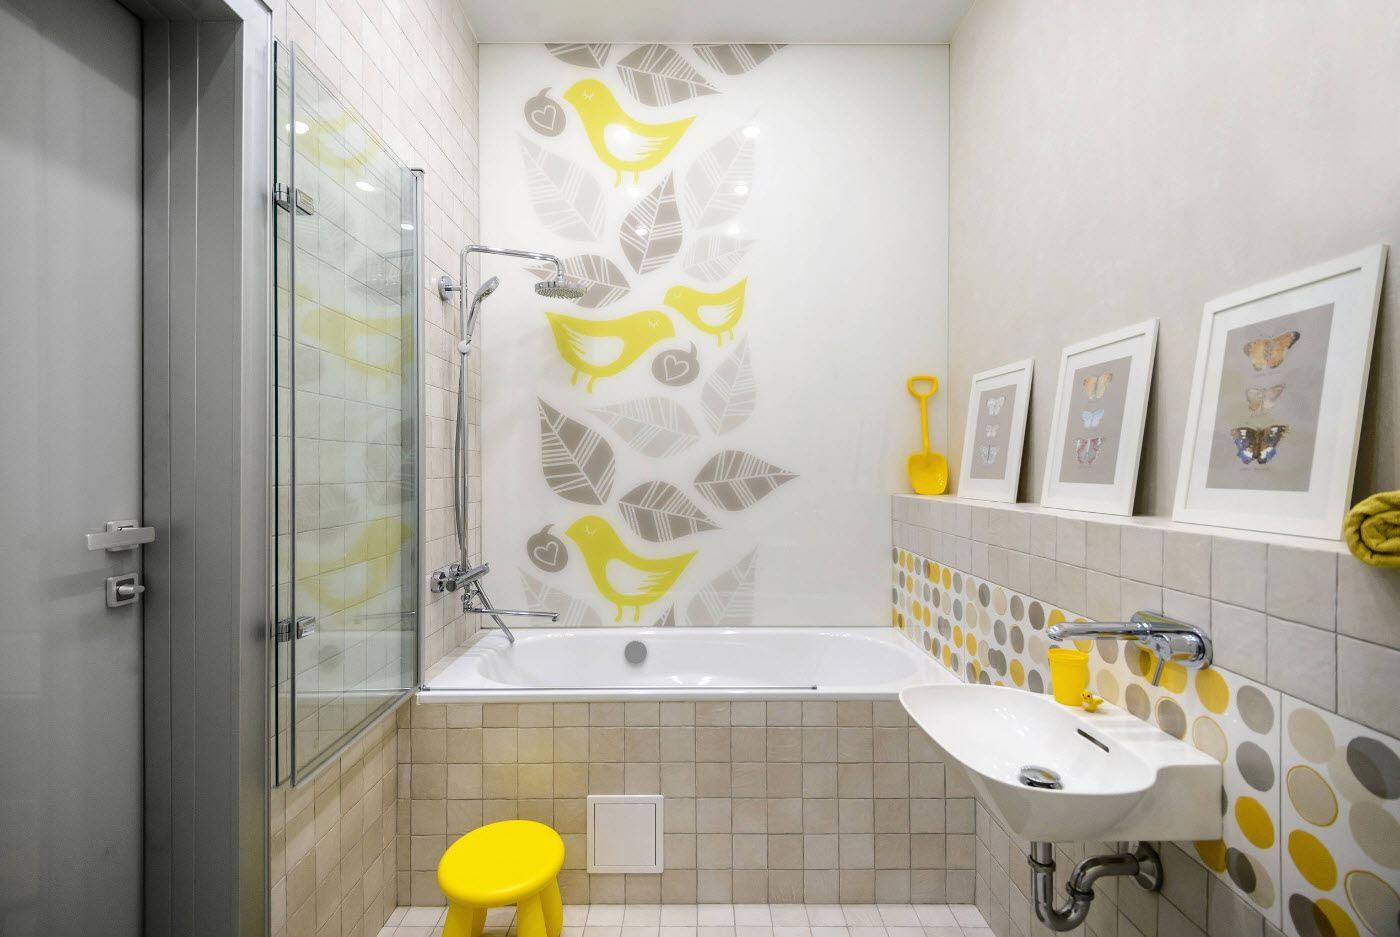 Bathroom Wall Finishing Materials Overview. Floral motif in light room